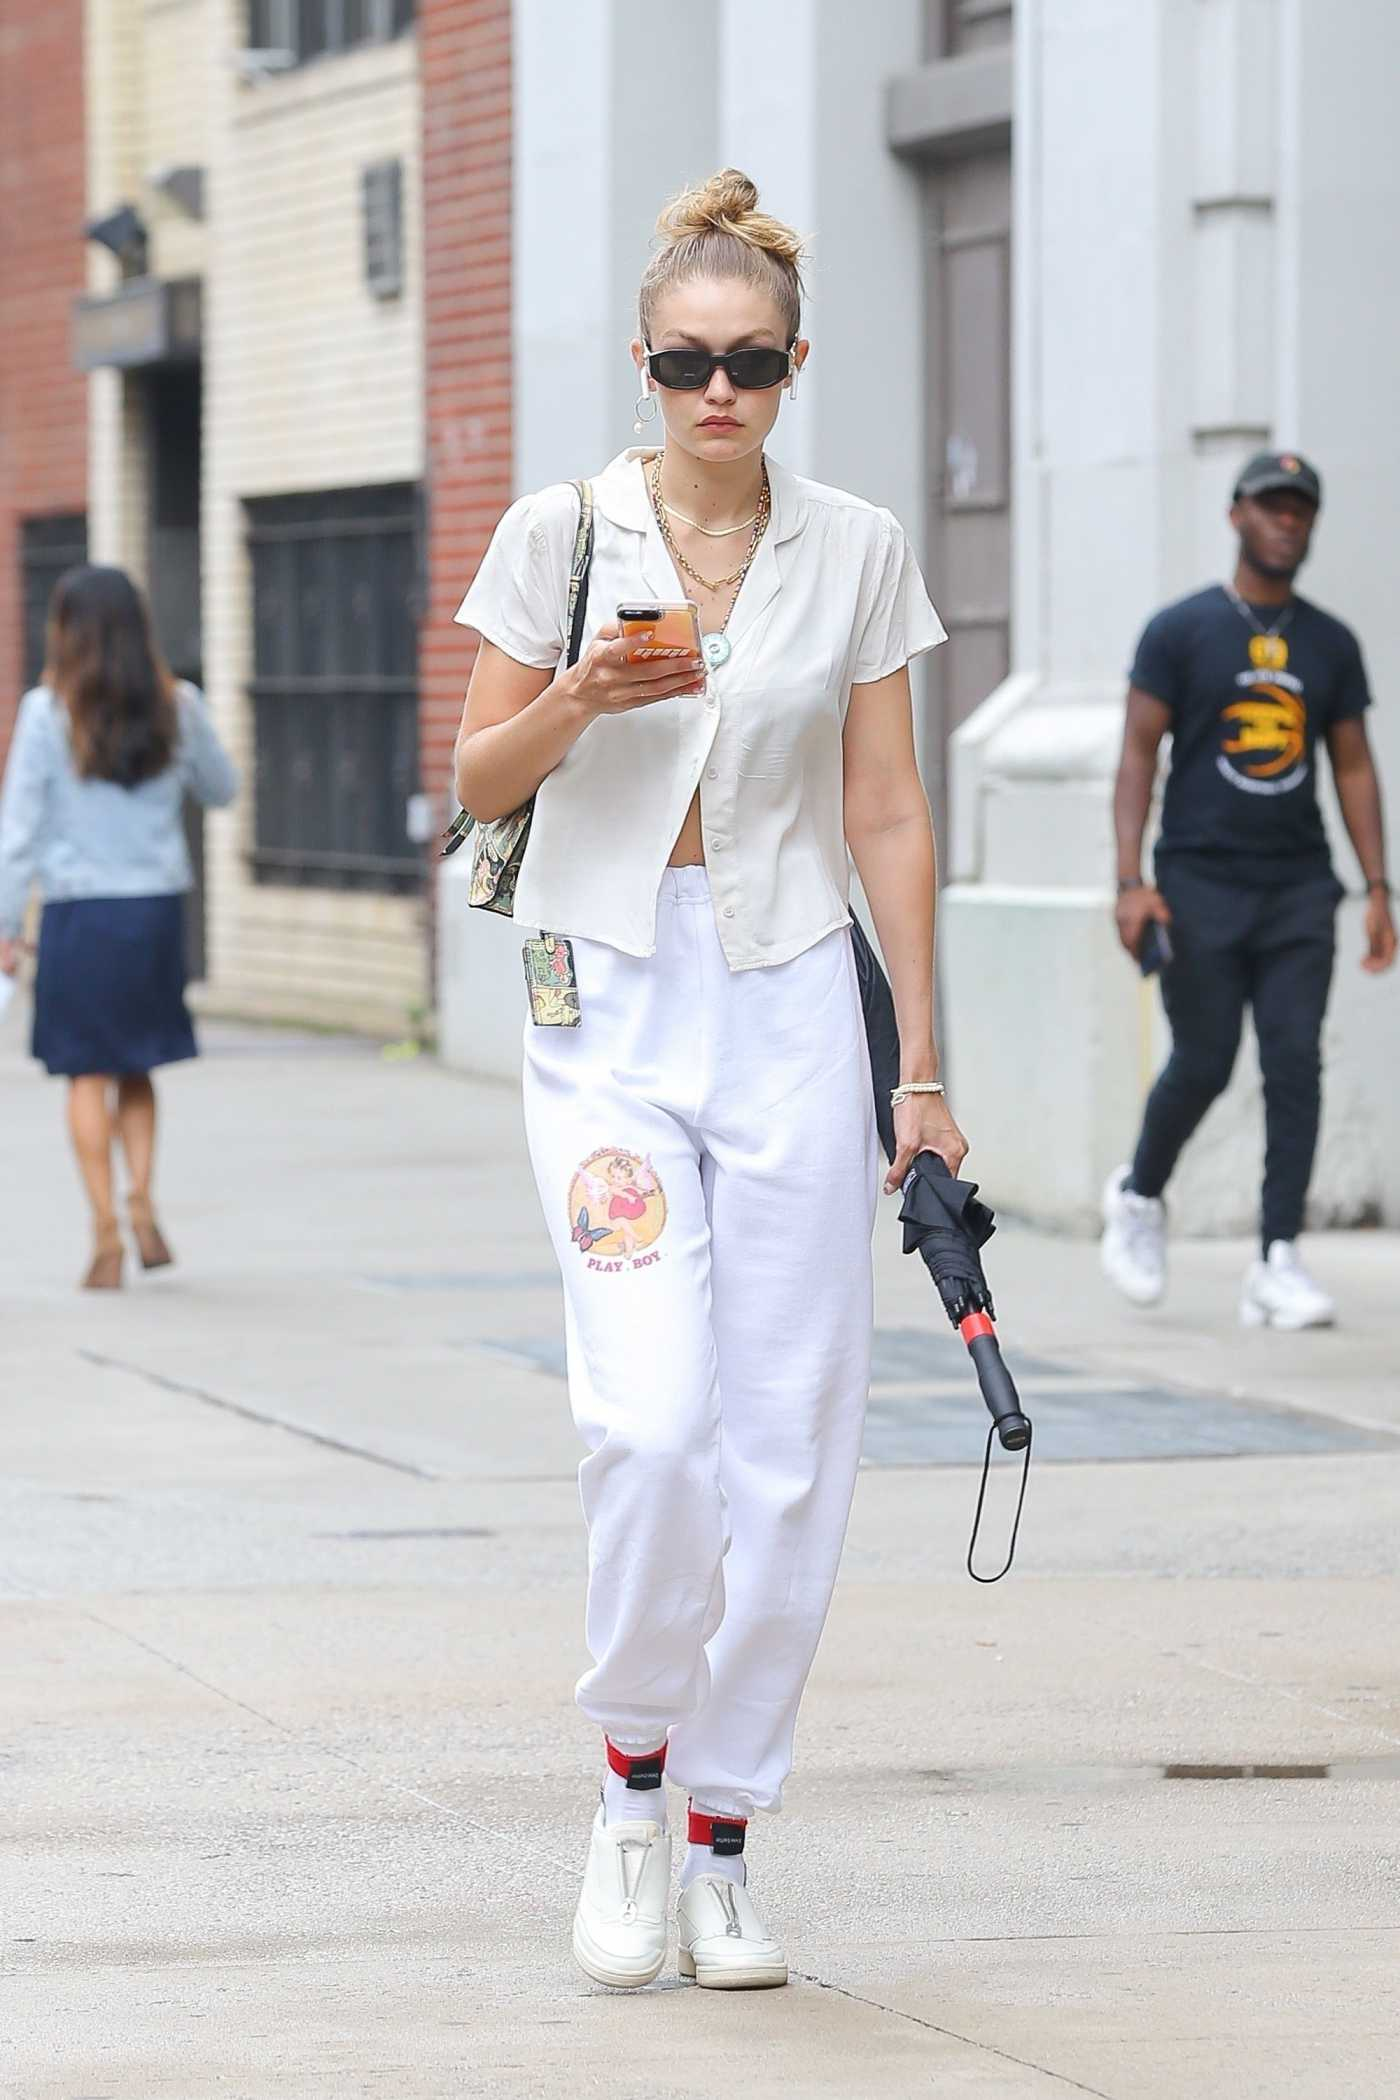 Gigi Hadid in a White Sweatpants Was Seen Out in NY 08/06/2019